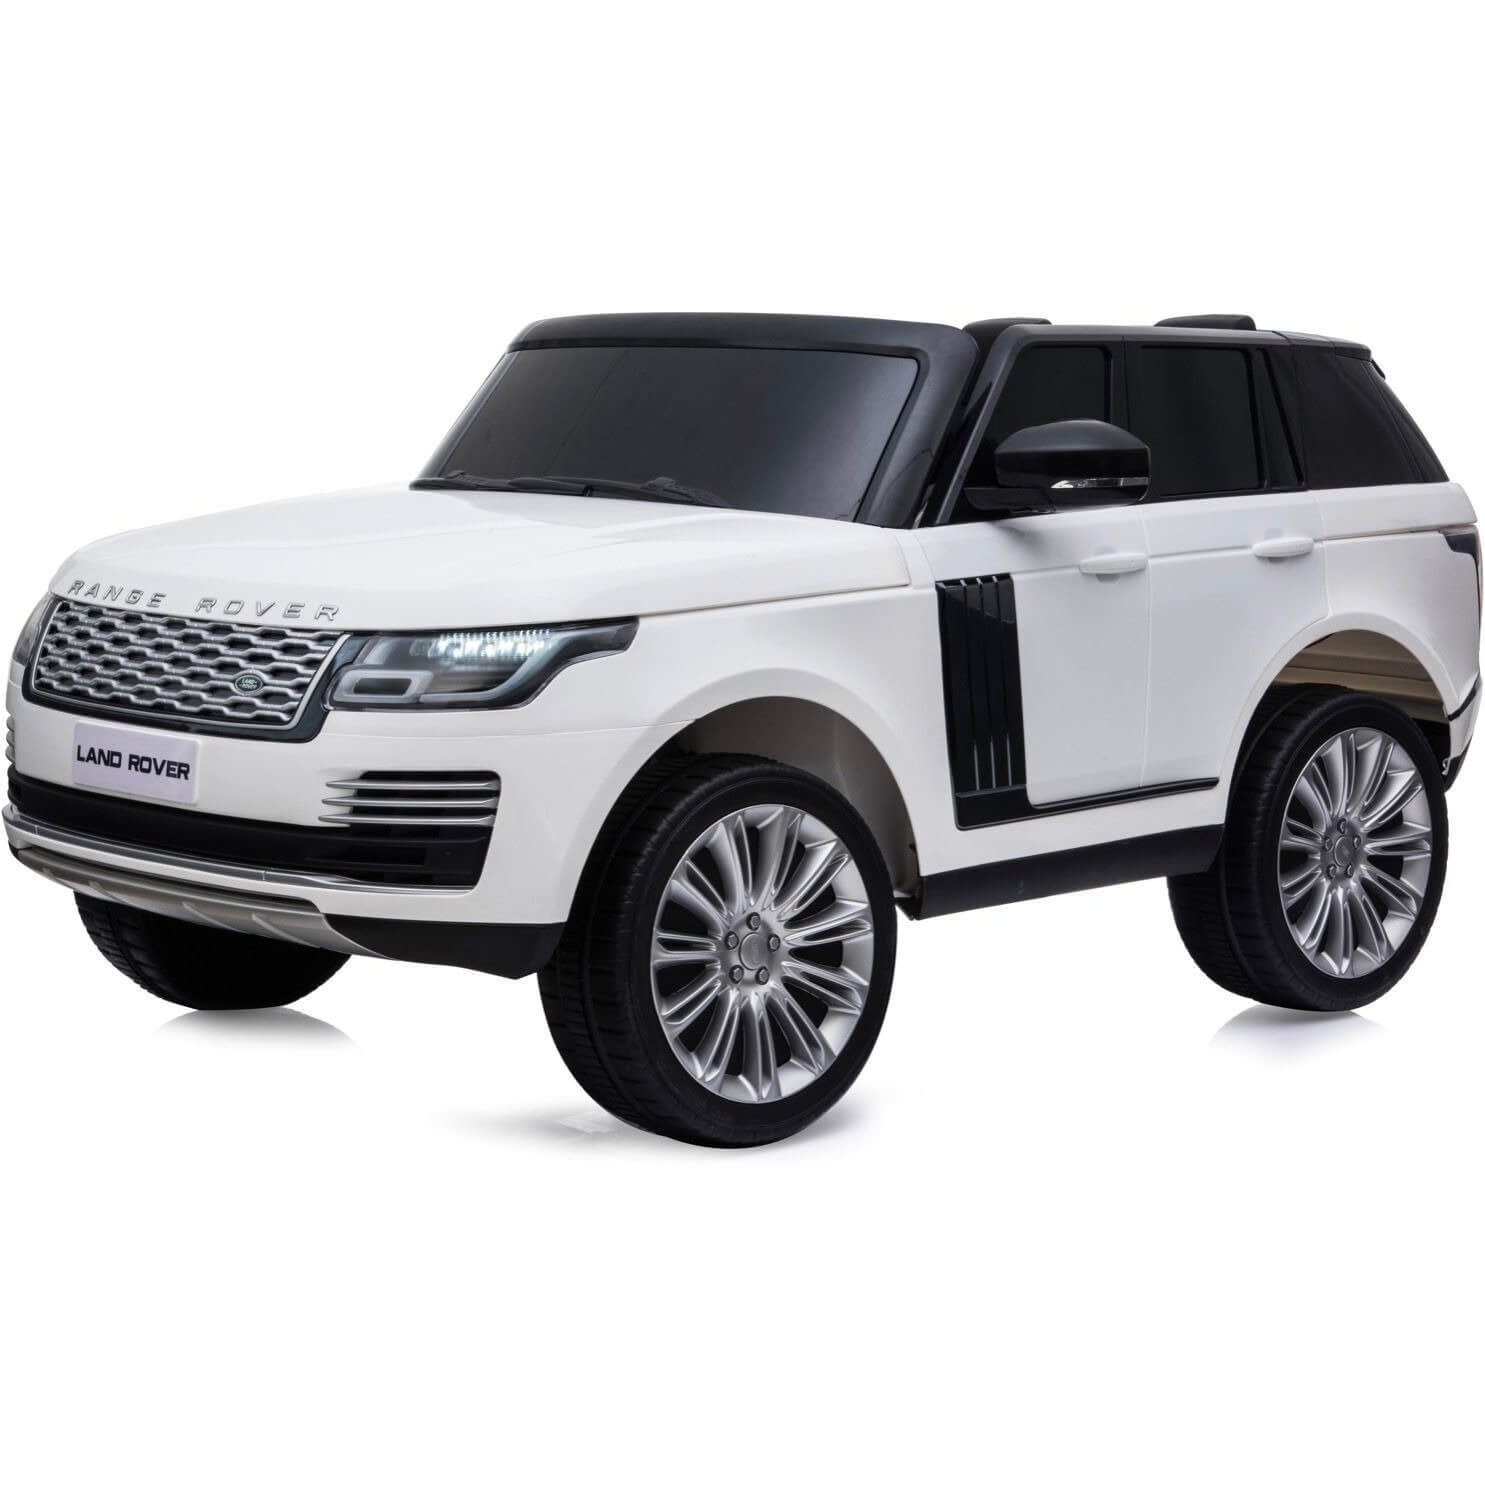 Range Rover Vogue Two Seater Ride On Car